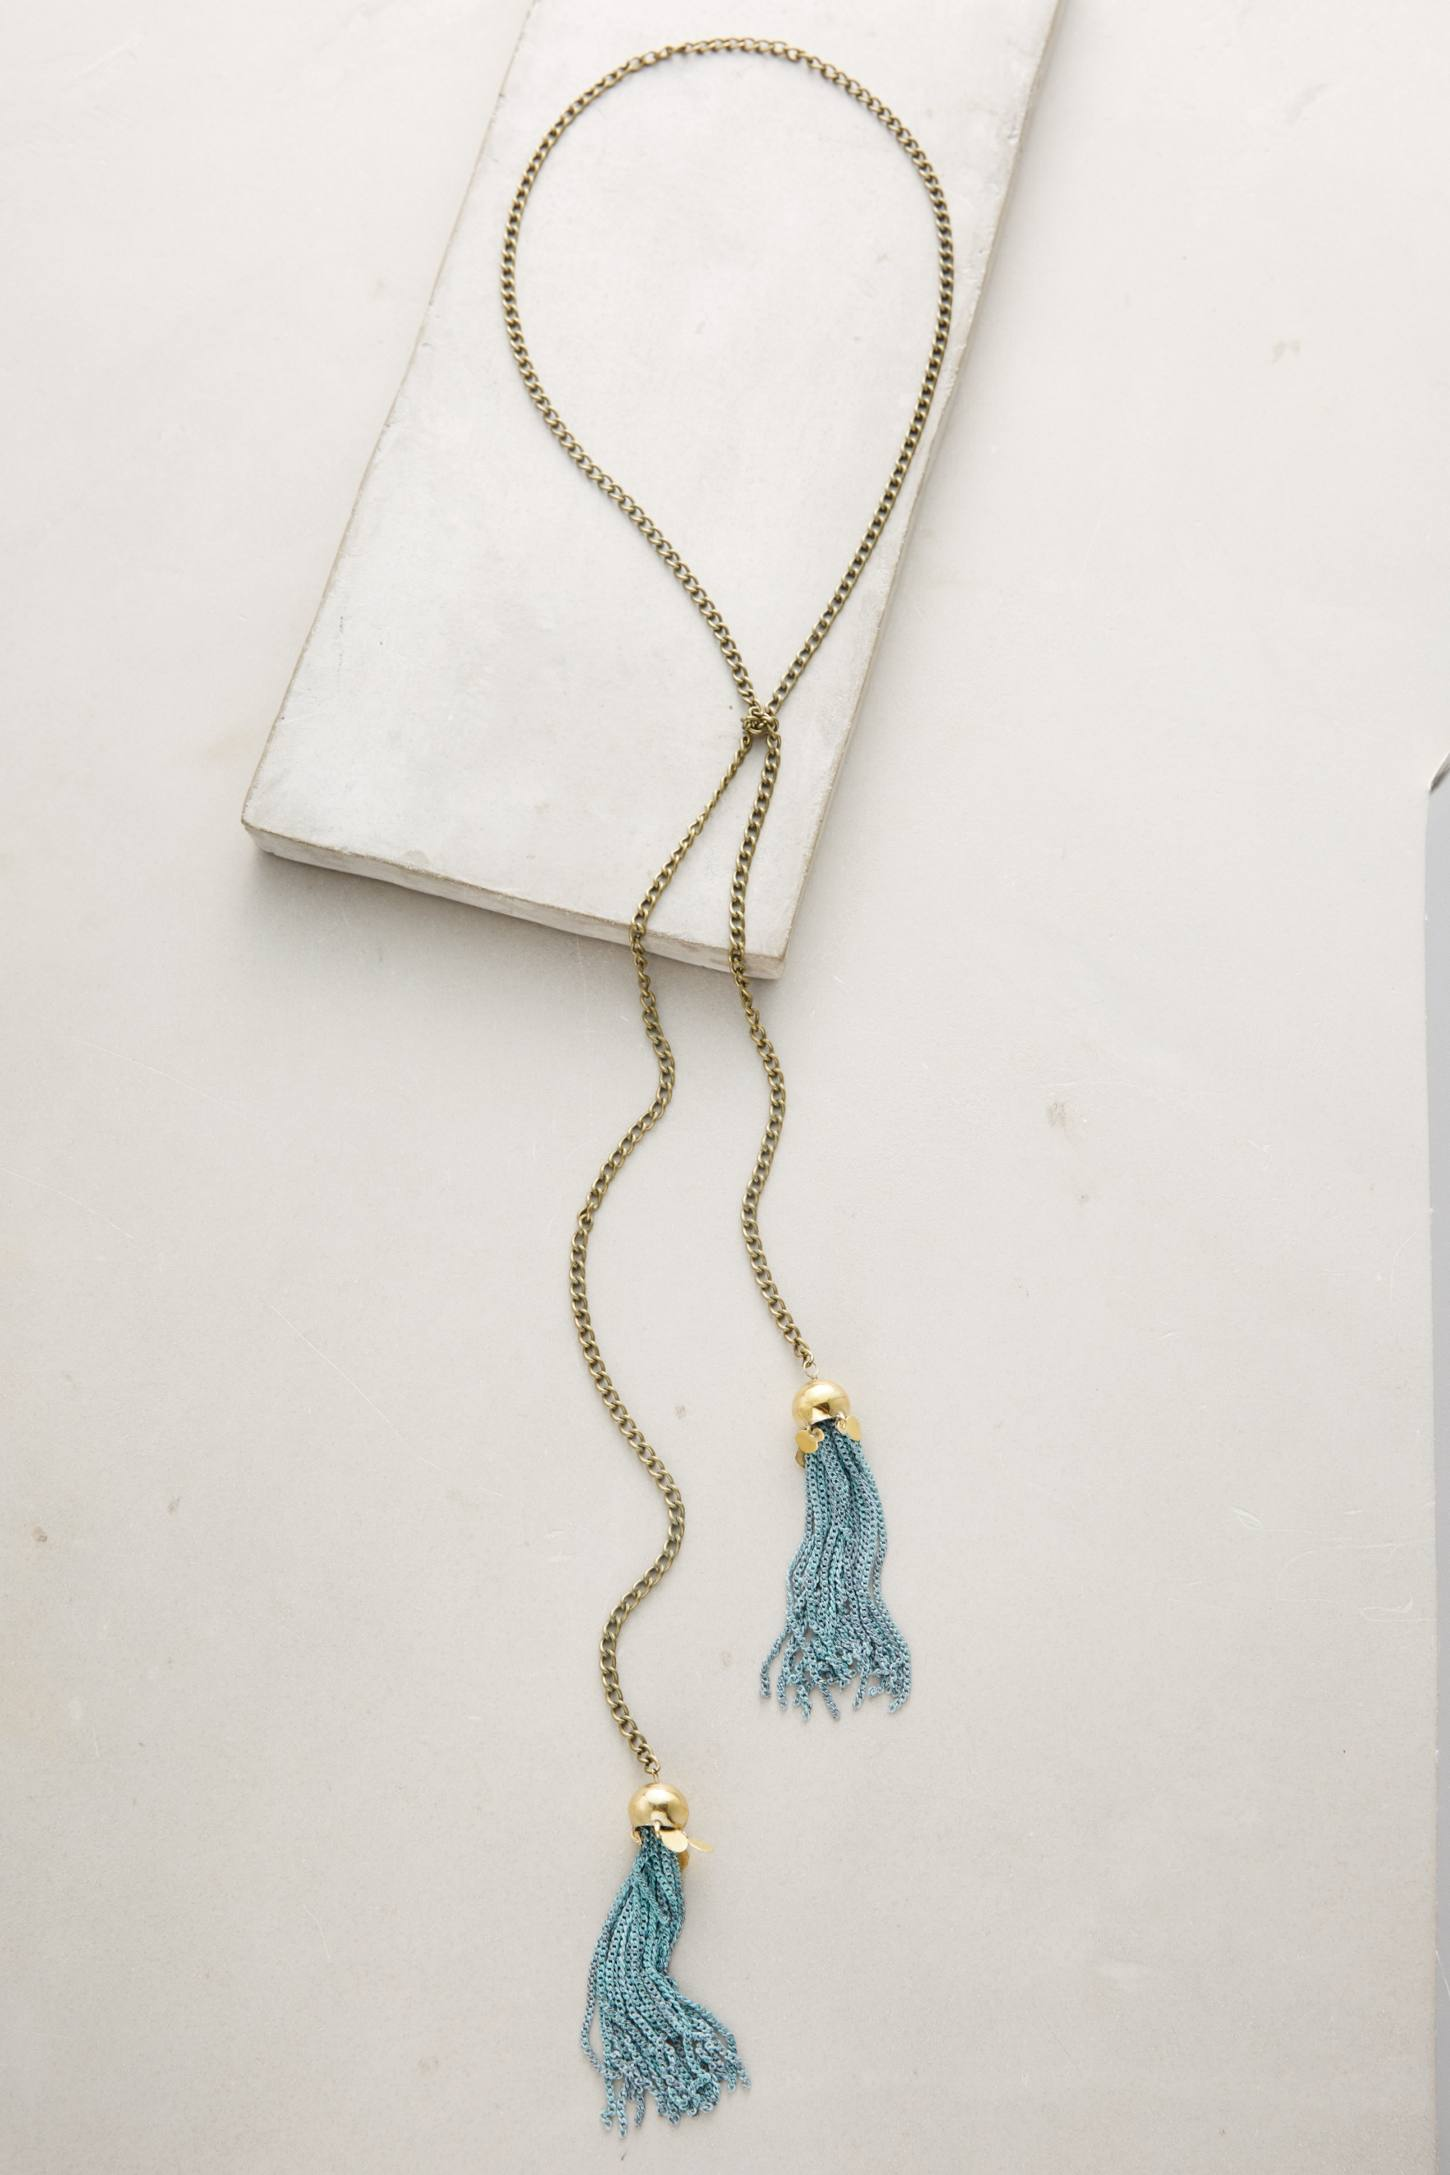 Tasseled Chain Necklace